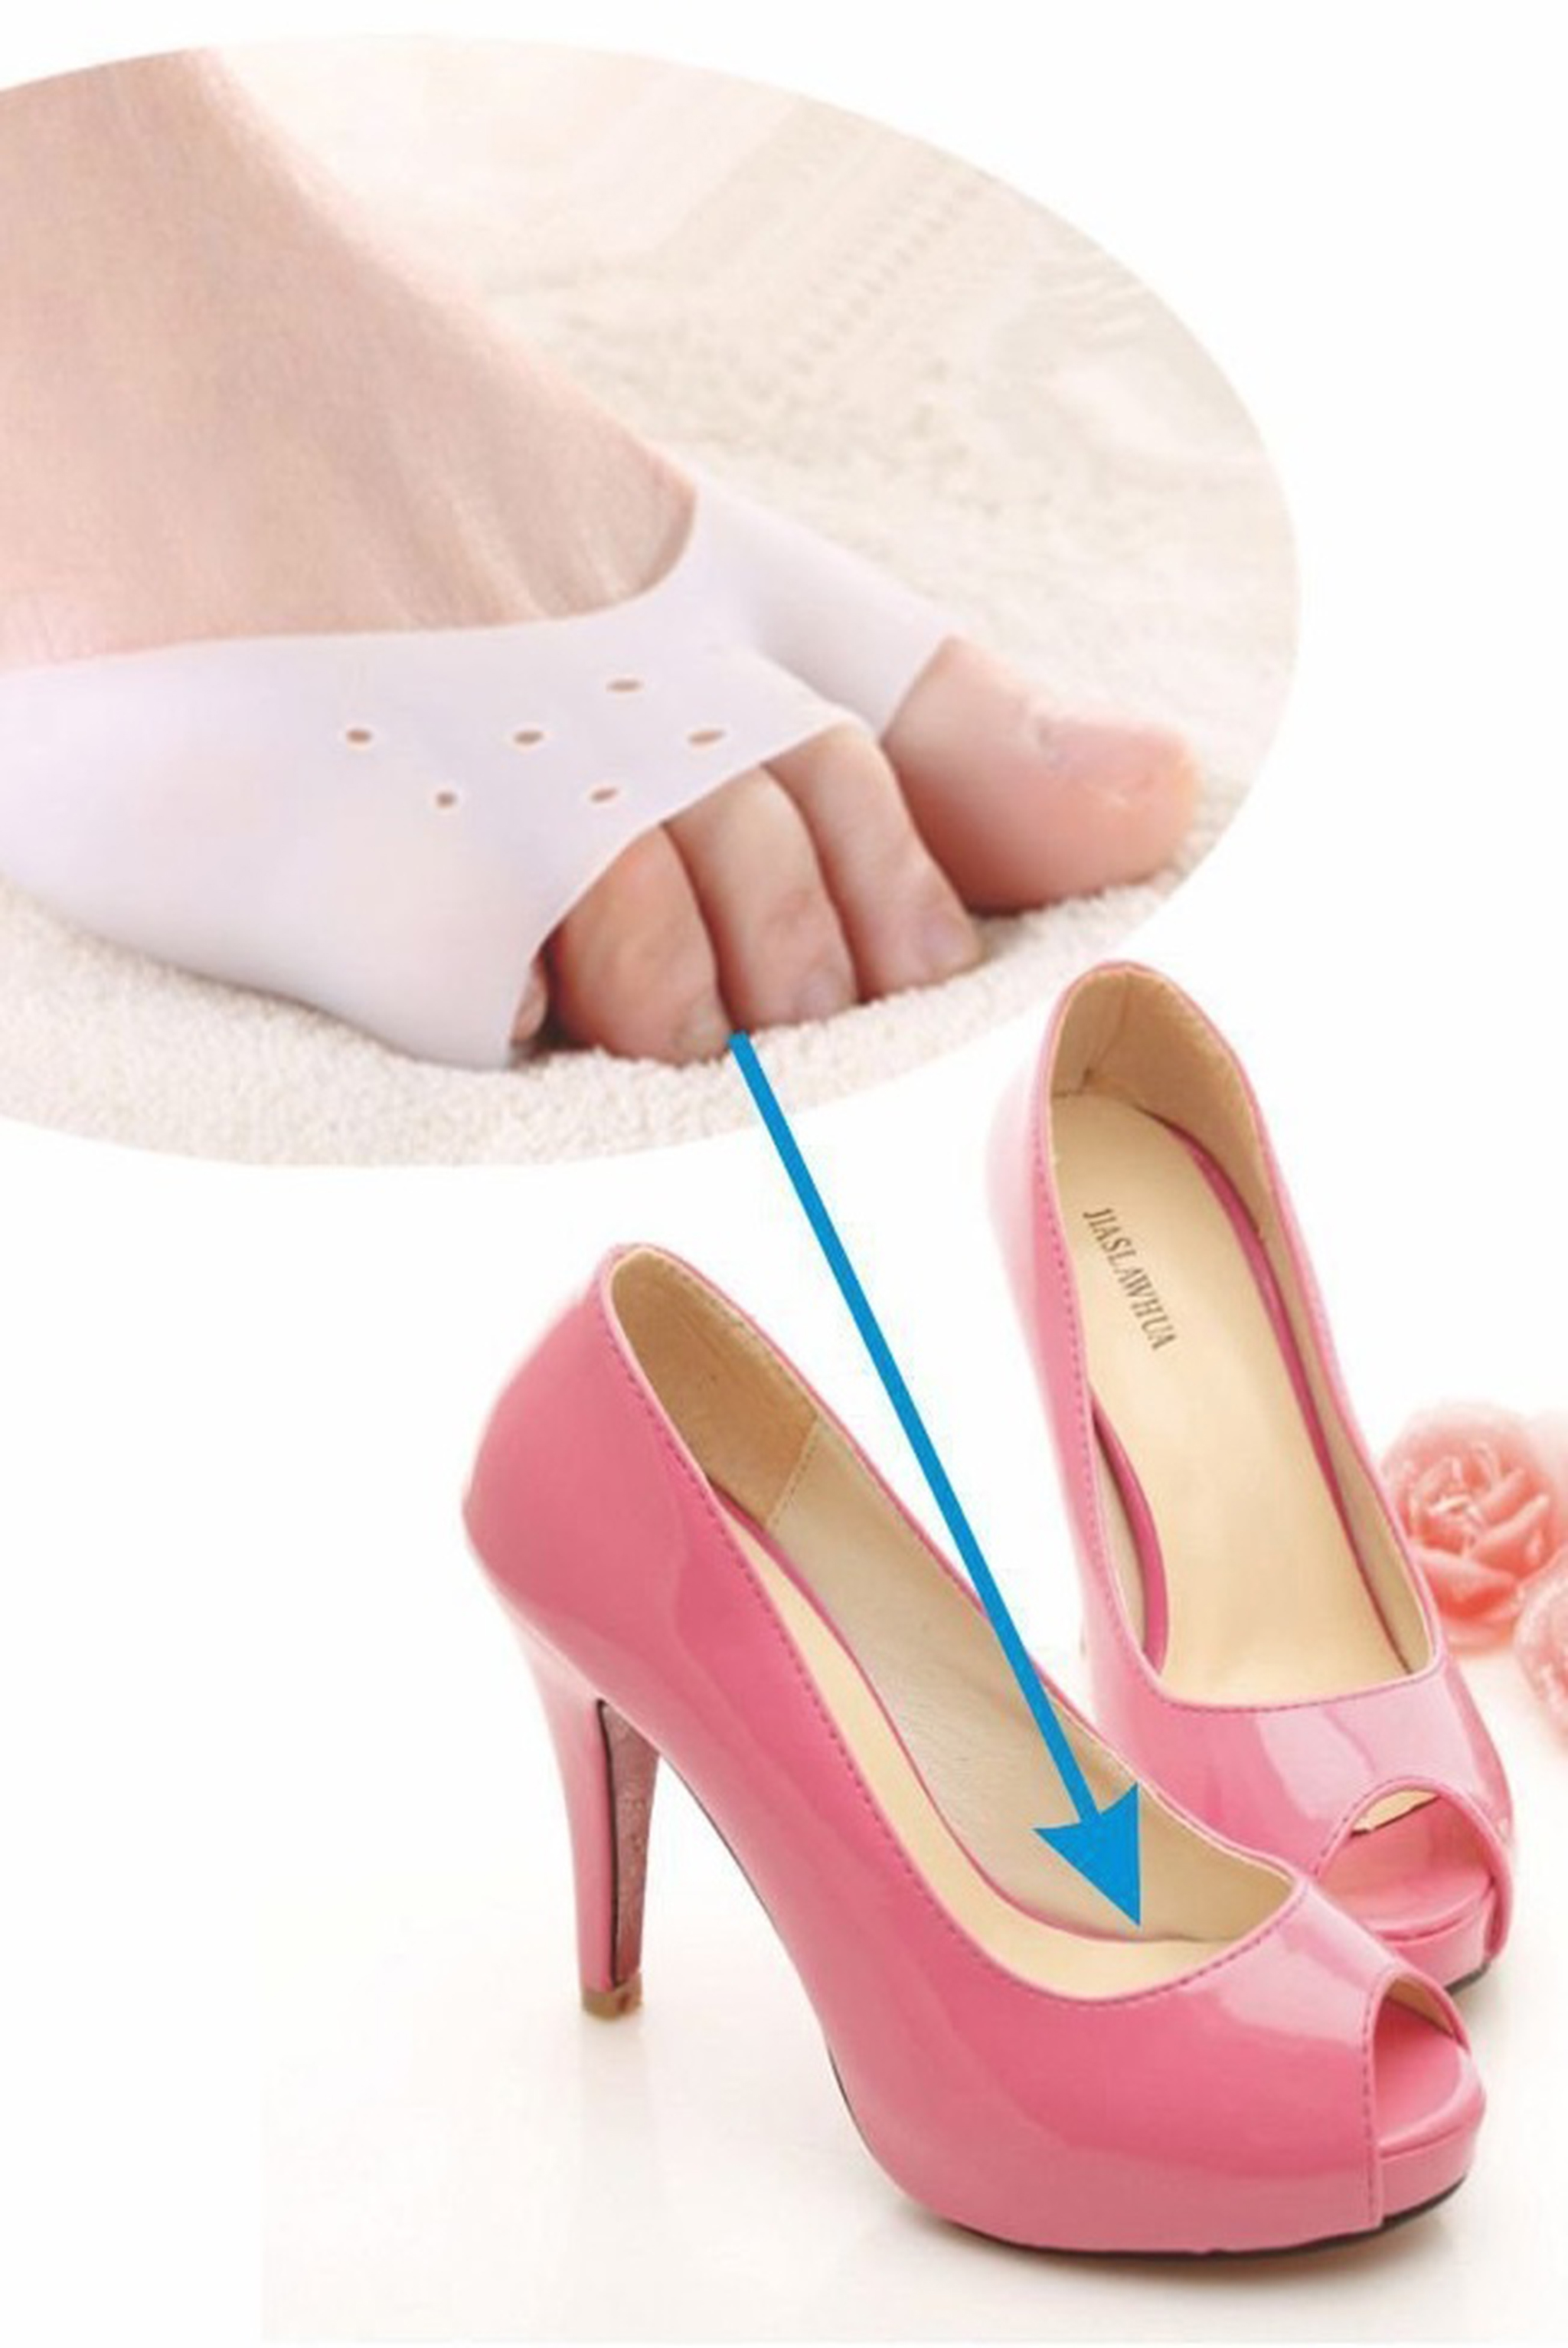 to articles easier comfortable high water heels walk involves lotion comforter in and stilettos trick make this